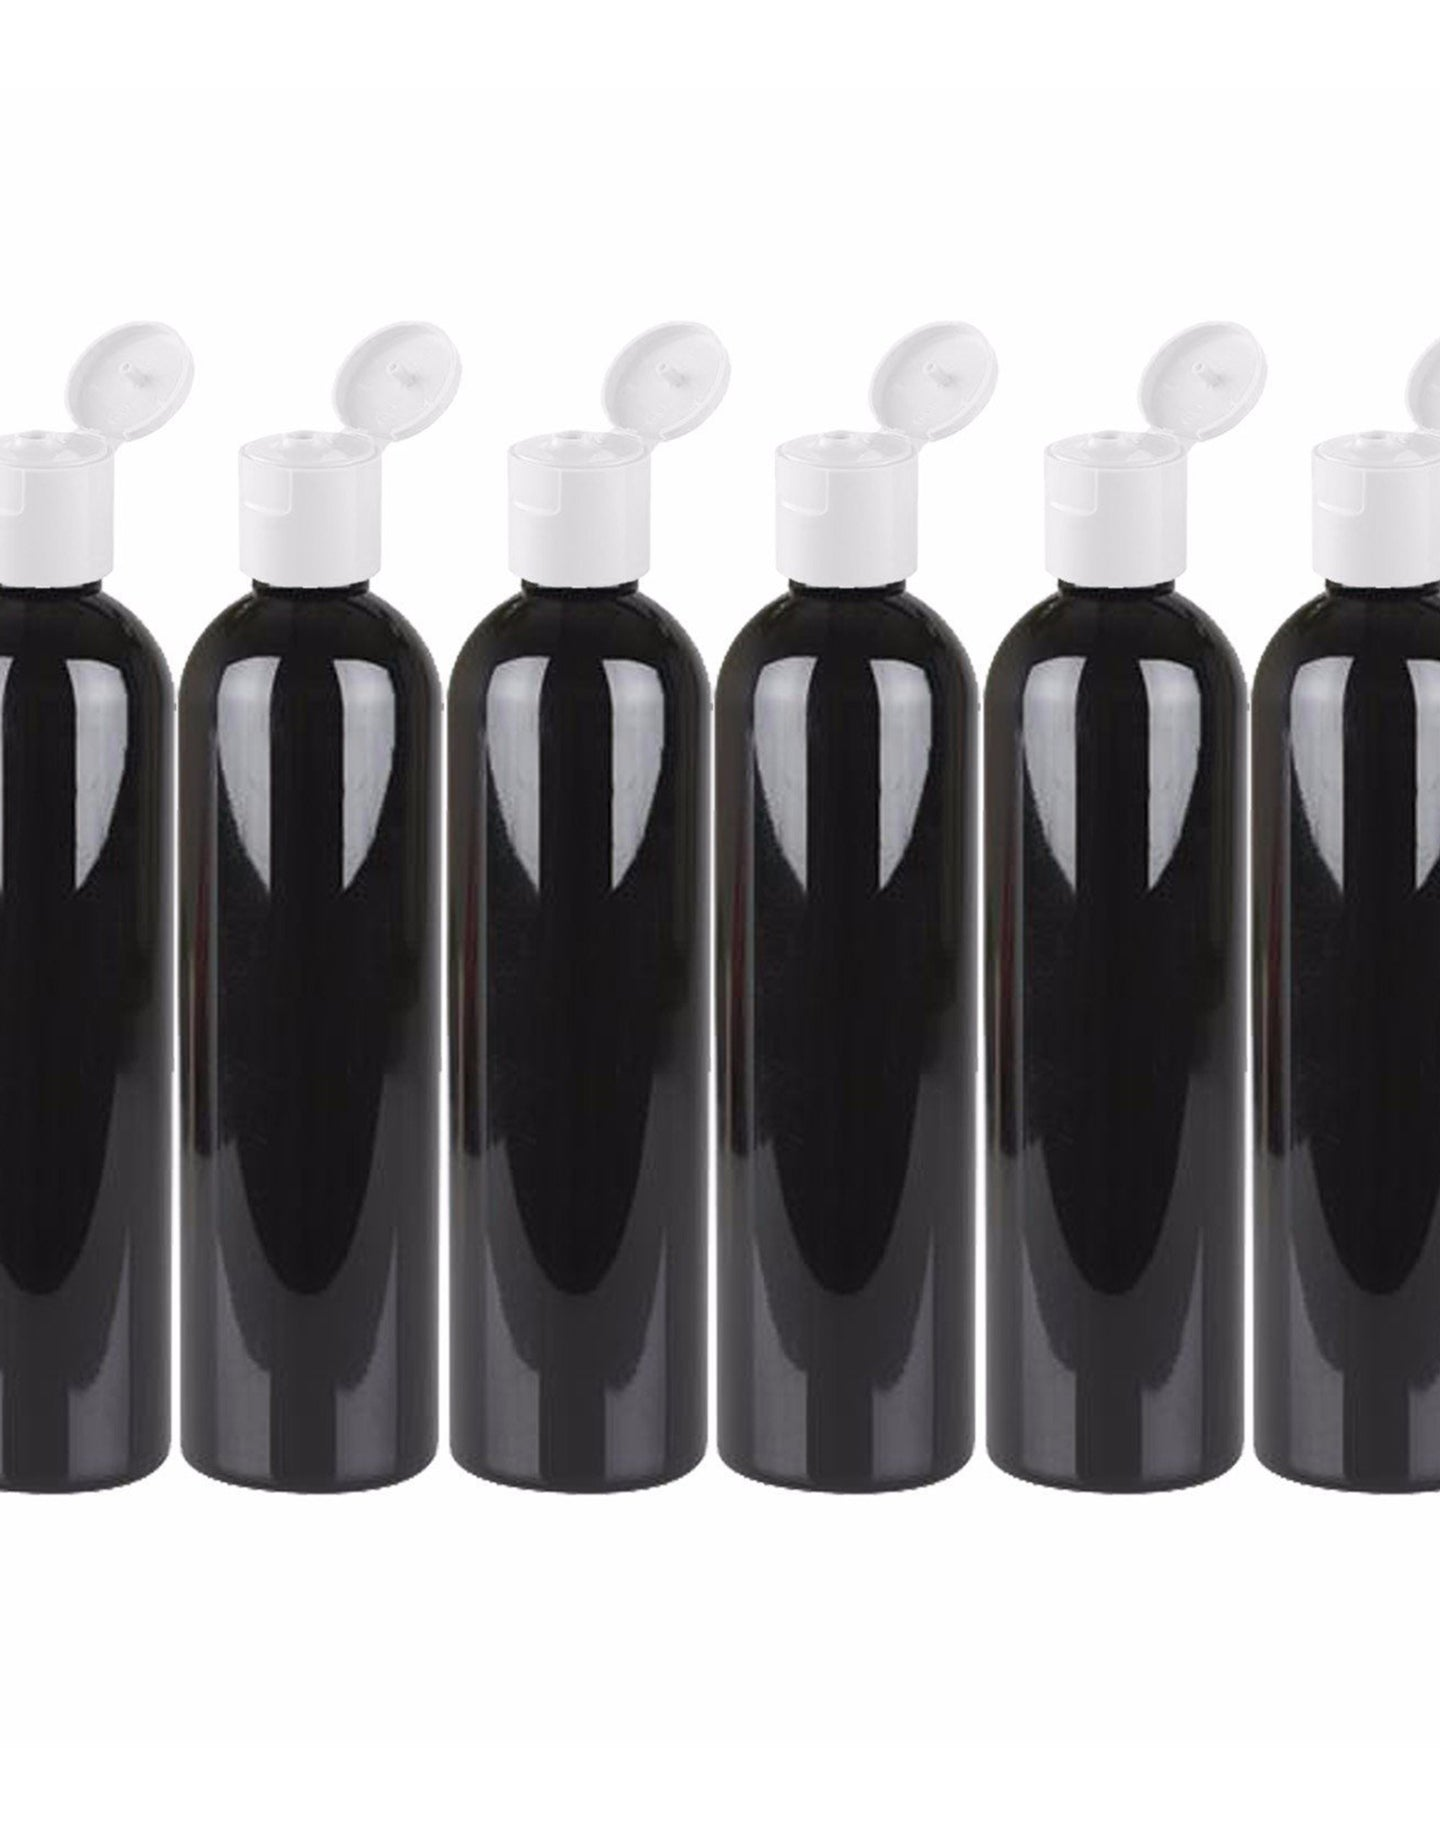 MoYo Natural Labs 8 oz Travel Bottle, Empty Travel Containers with Flip Caps, BPA Free PET Plastic Squeezable Toiletry/Cosmetic Bottle (6 Pack, Black)